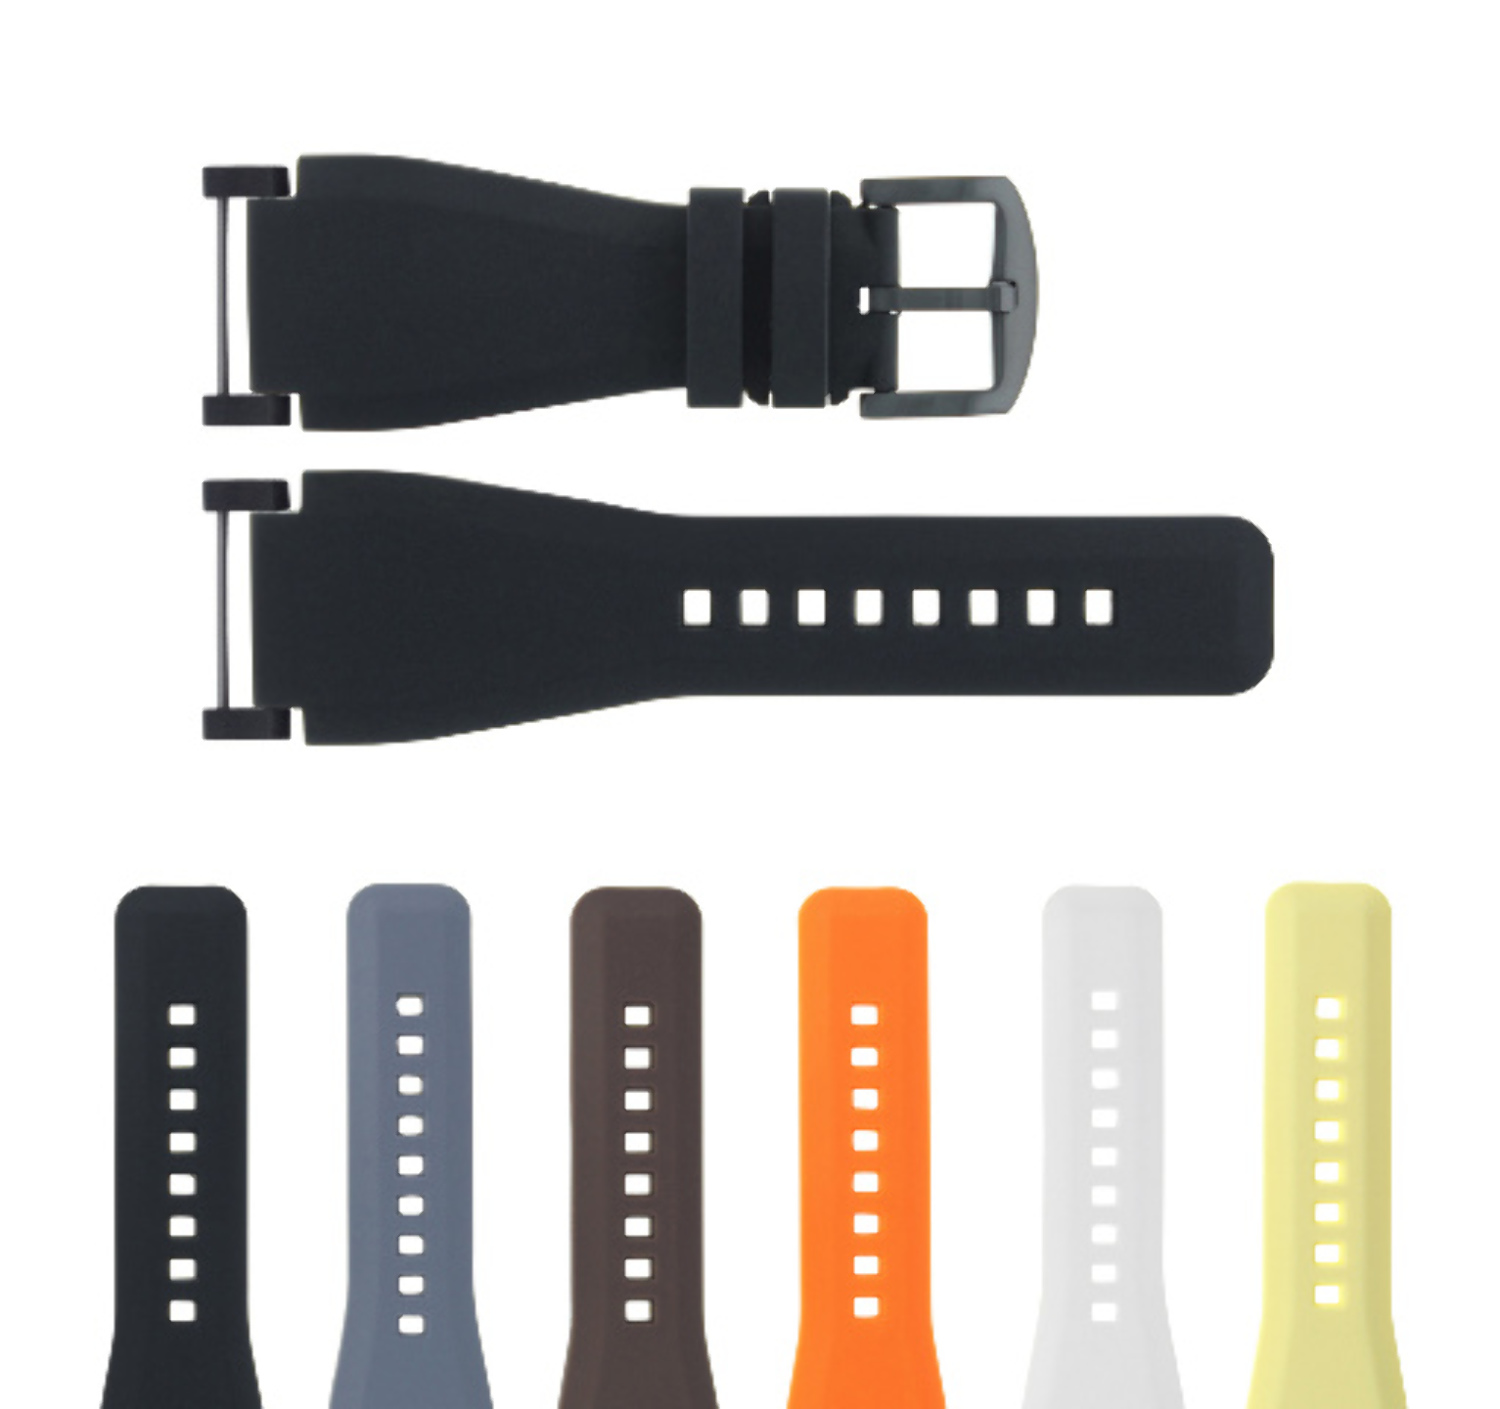 24MM SUUNTO CORE RUBBER SILICONE REPLACEMENT WATCH BAND STRAP + BLACK ADAPTER